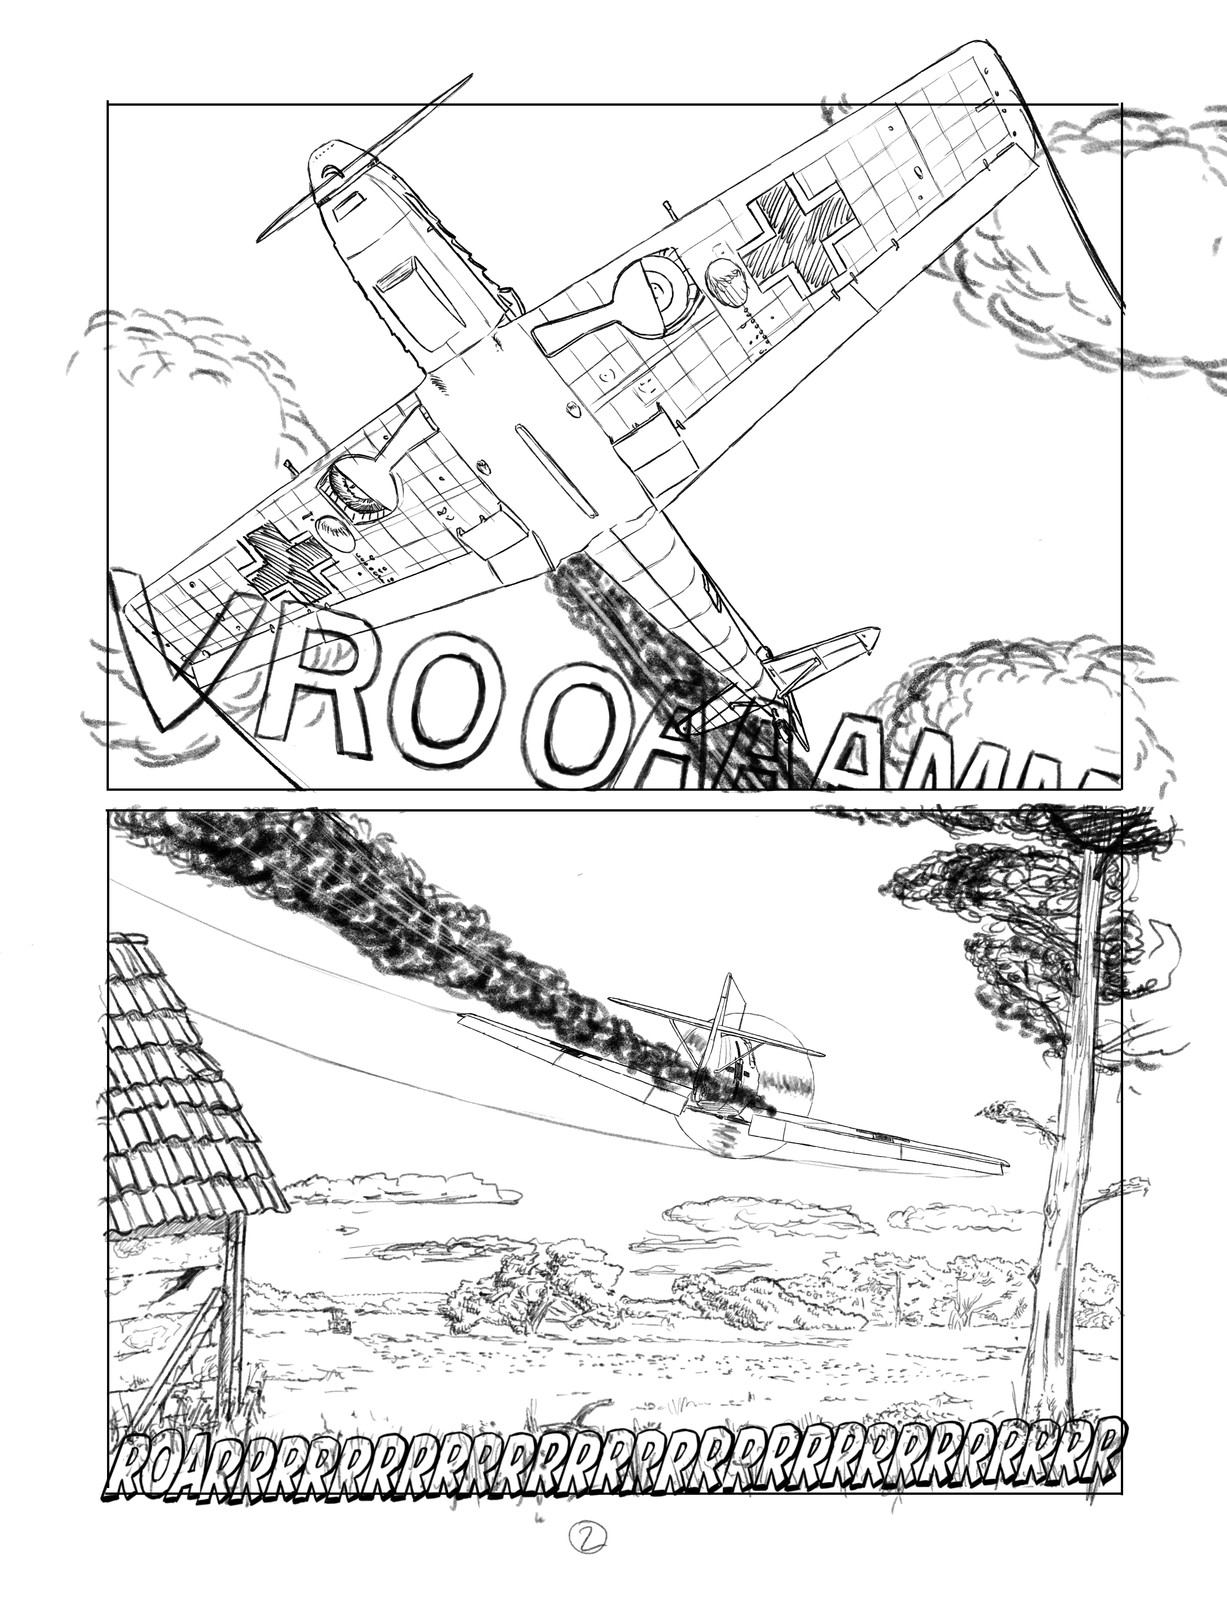 Pencils for page two of a twelve page sequence. I'd love to work with a real letterer. The vrooaam sound fx still sucks